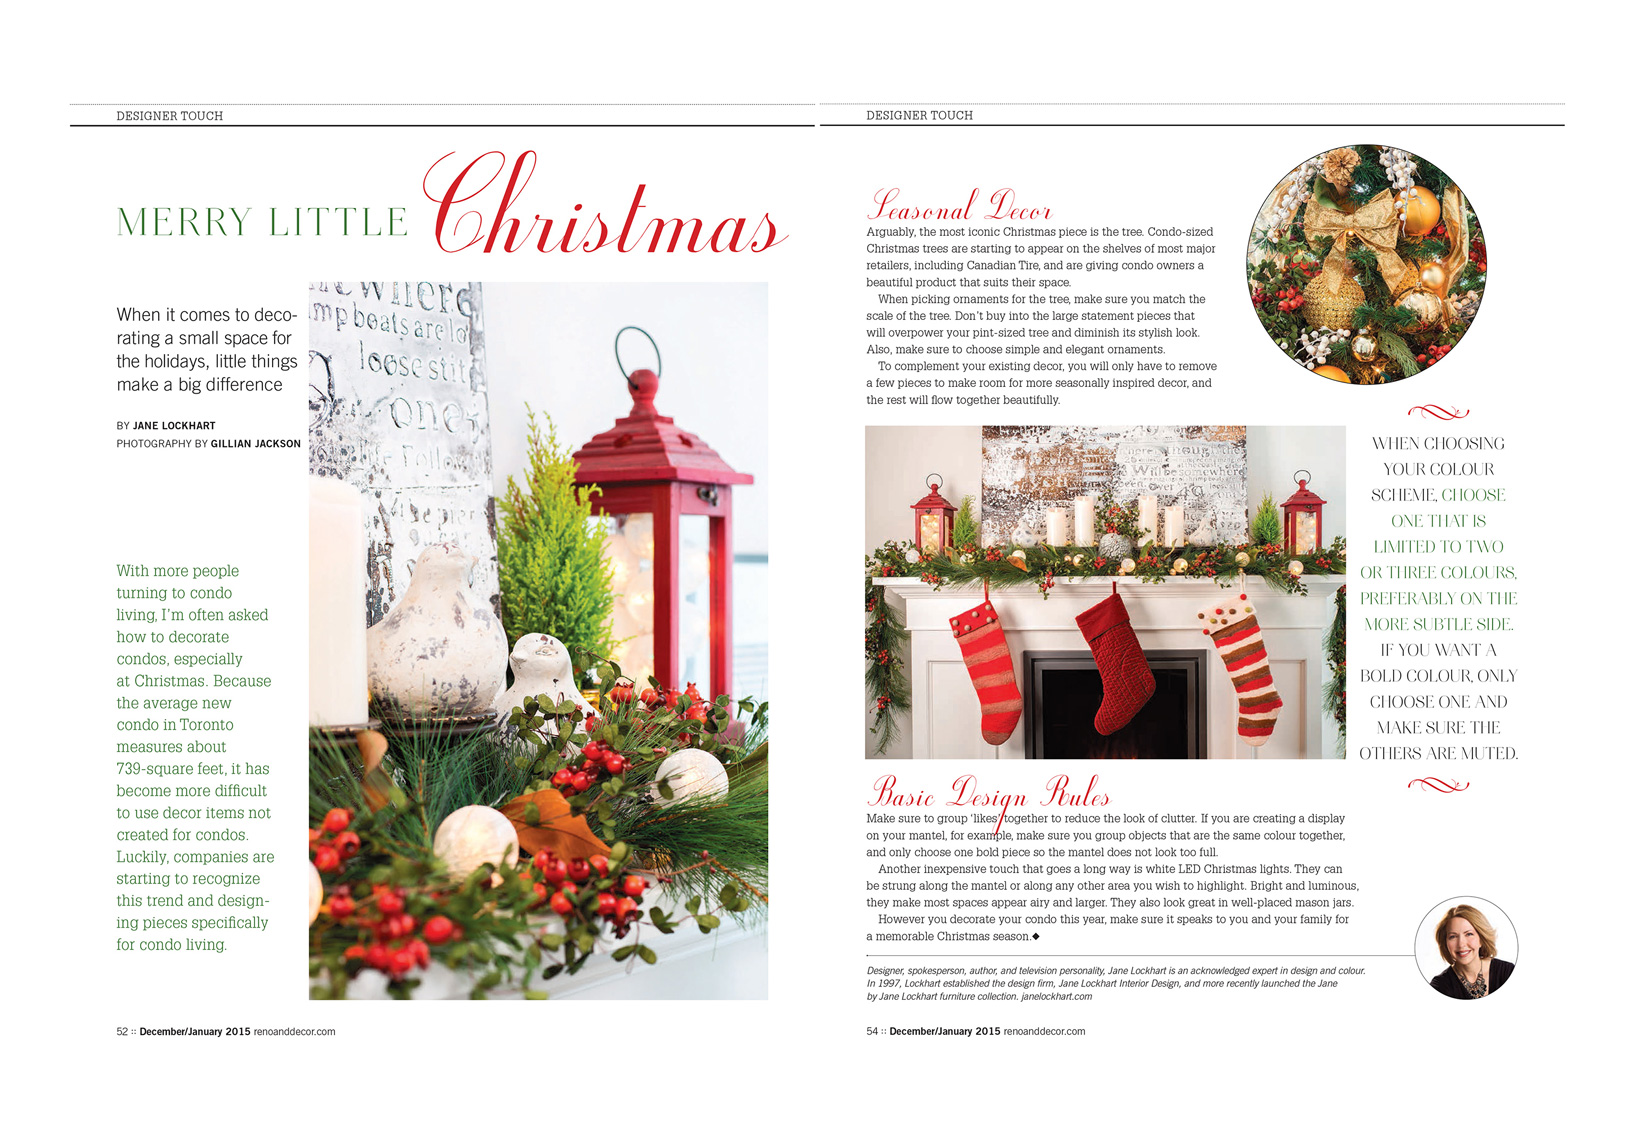 Reno & Decor - 2014 December